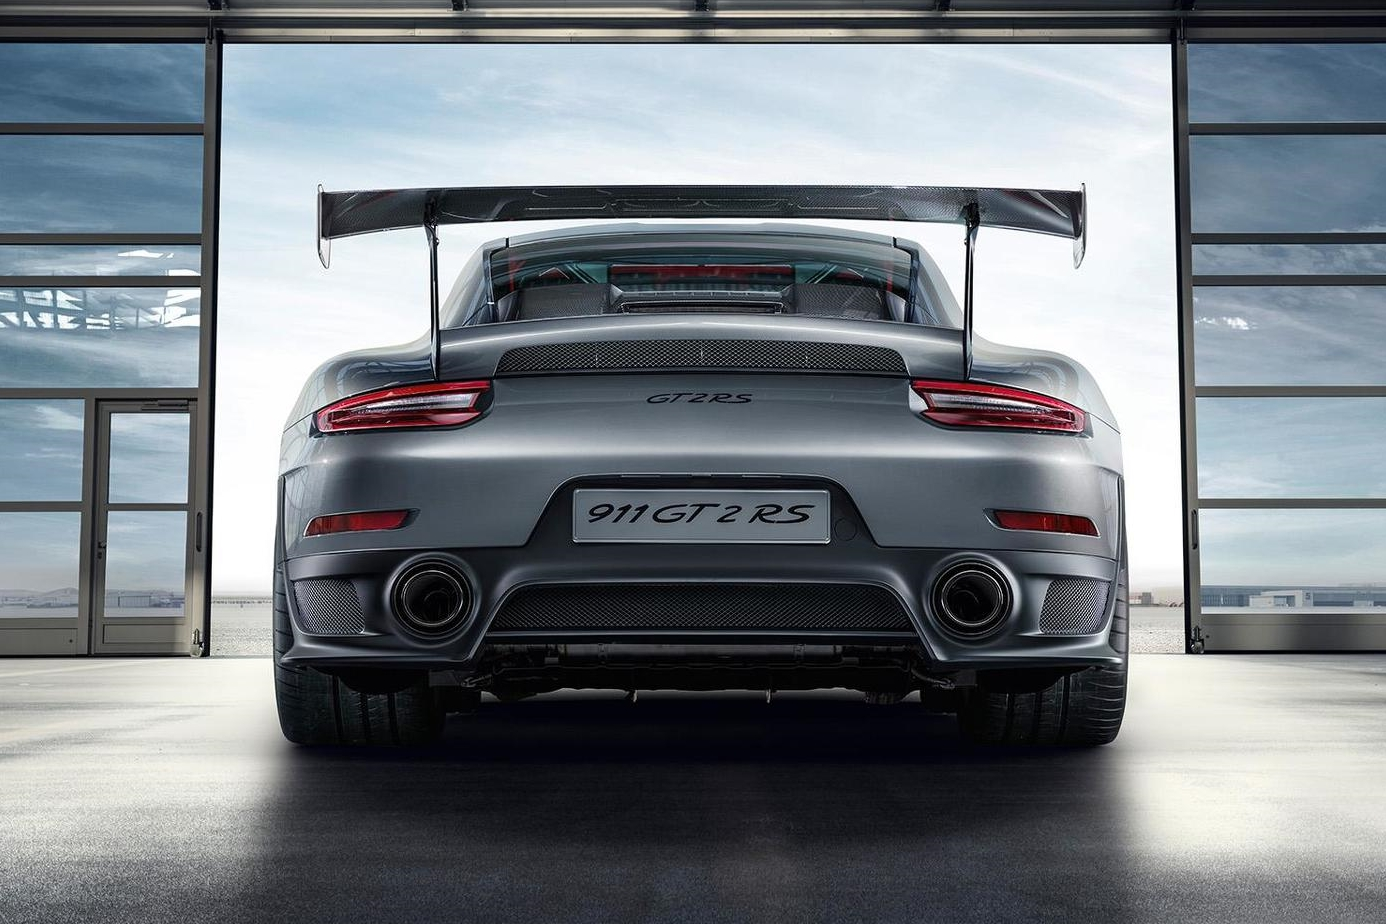 new porsche 911 gt2 rs graces the goodwood festival of speed with 690bhp pictures evo new fashions. Black Bedroom Furniture Sets. Home Design Ideas